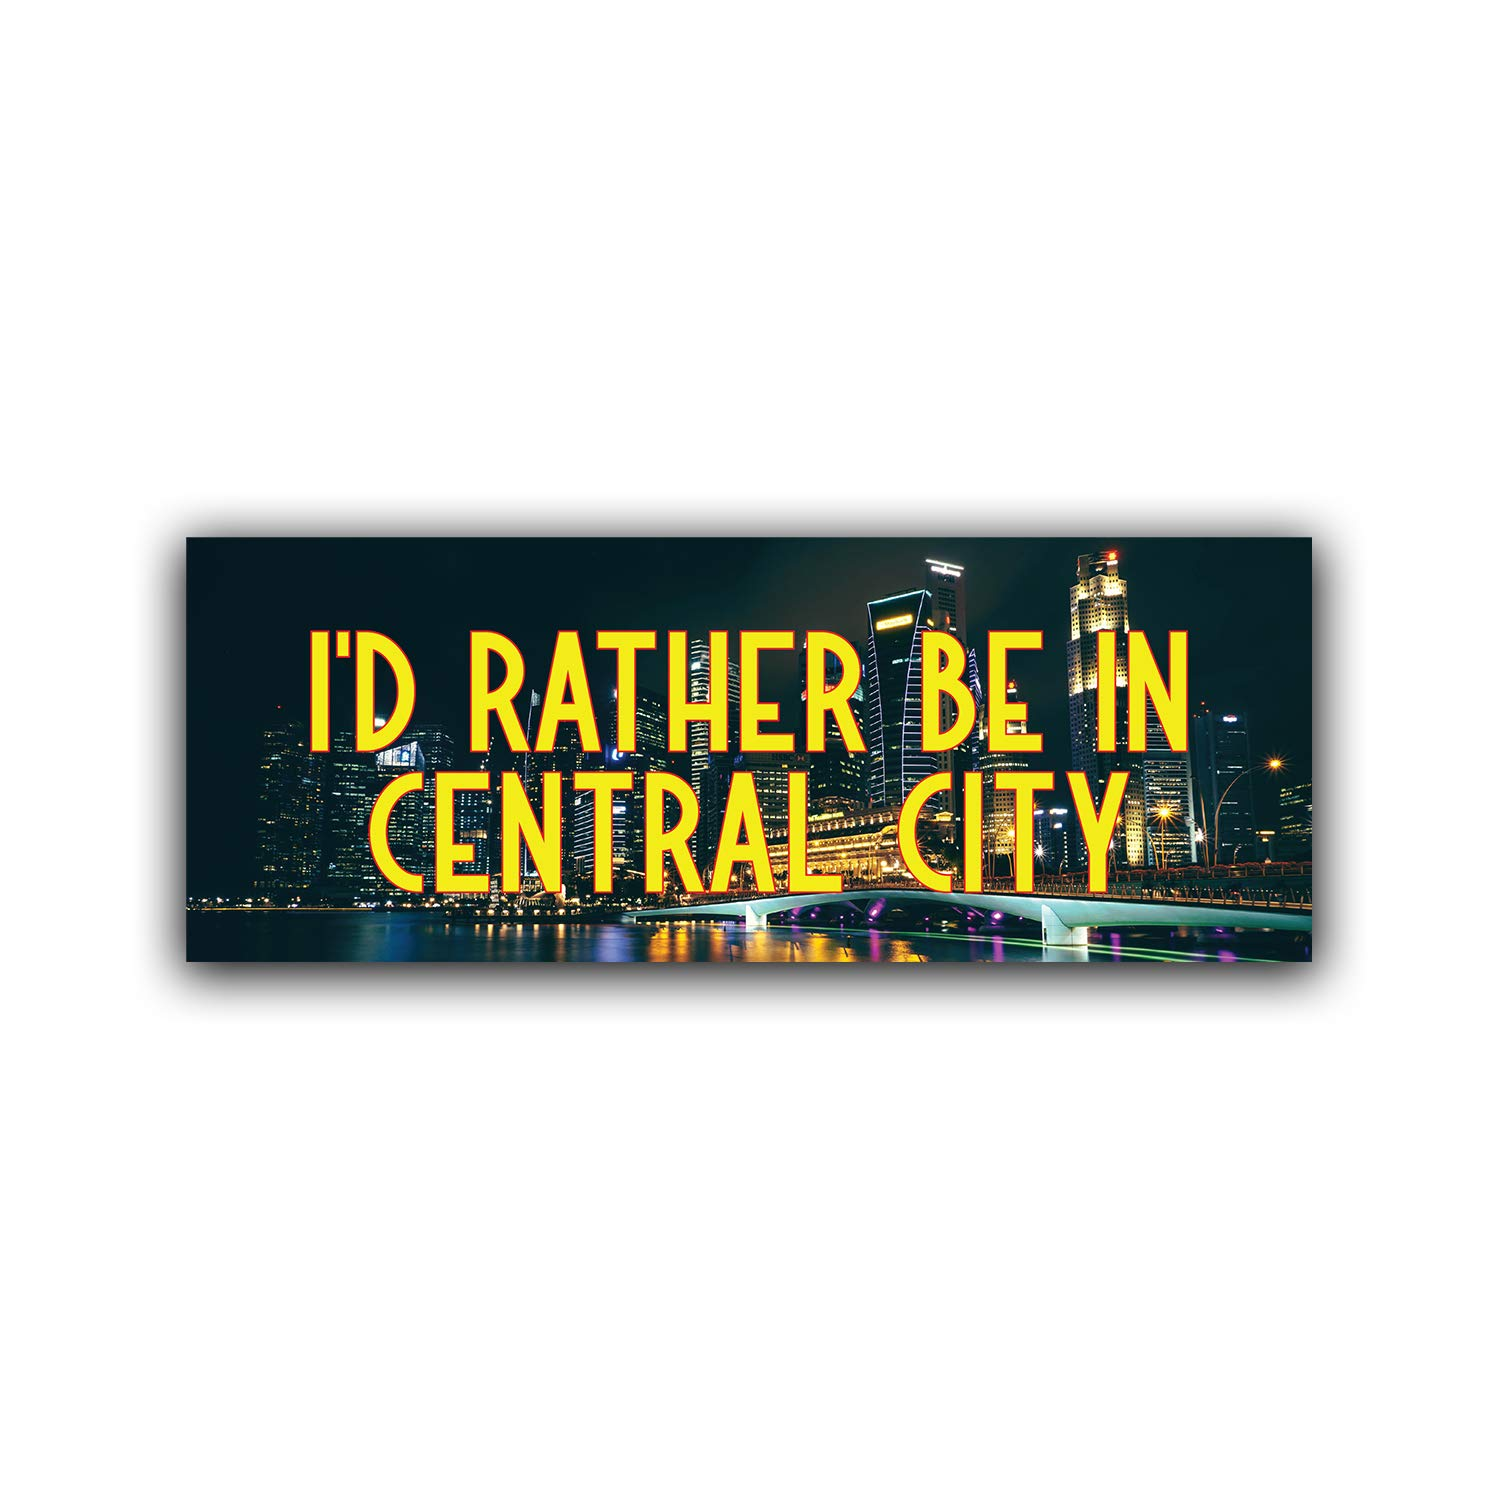 MKS0781 Car Truck Van SUV Window Wall Cup Laptop More Shiz Id Rather Be in Central City Vinyl Decal Sticker One 8.25 Inch Decal